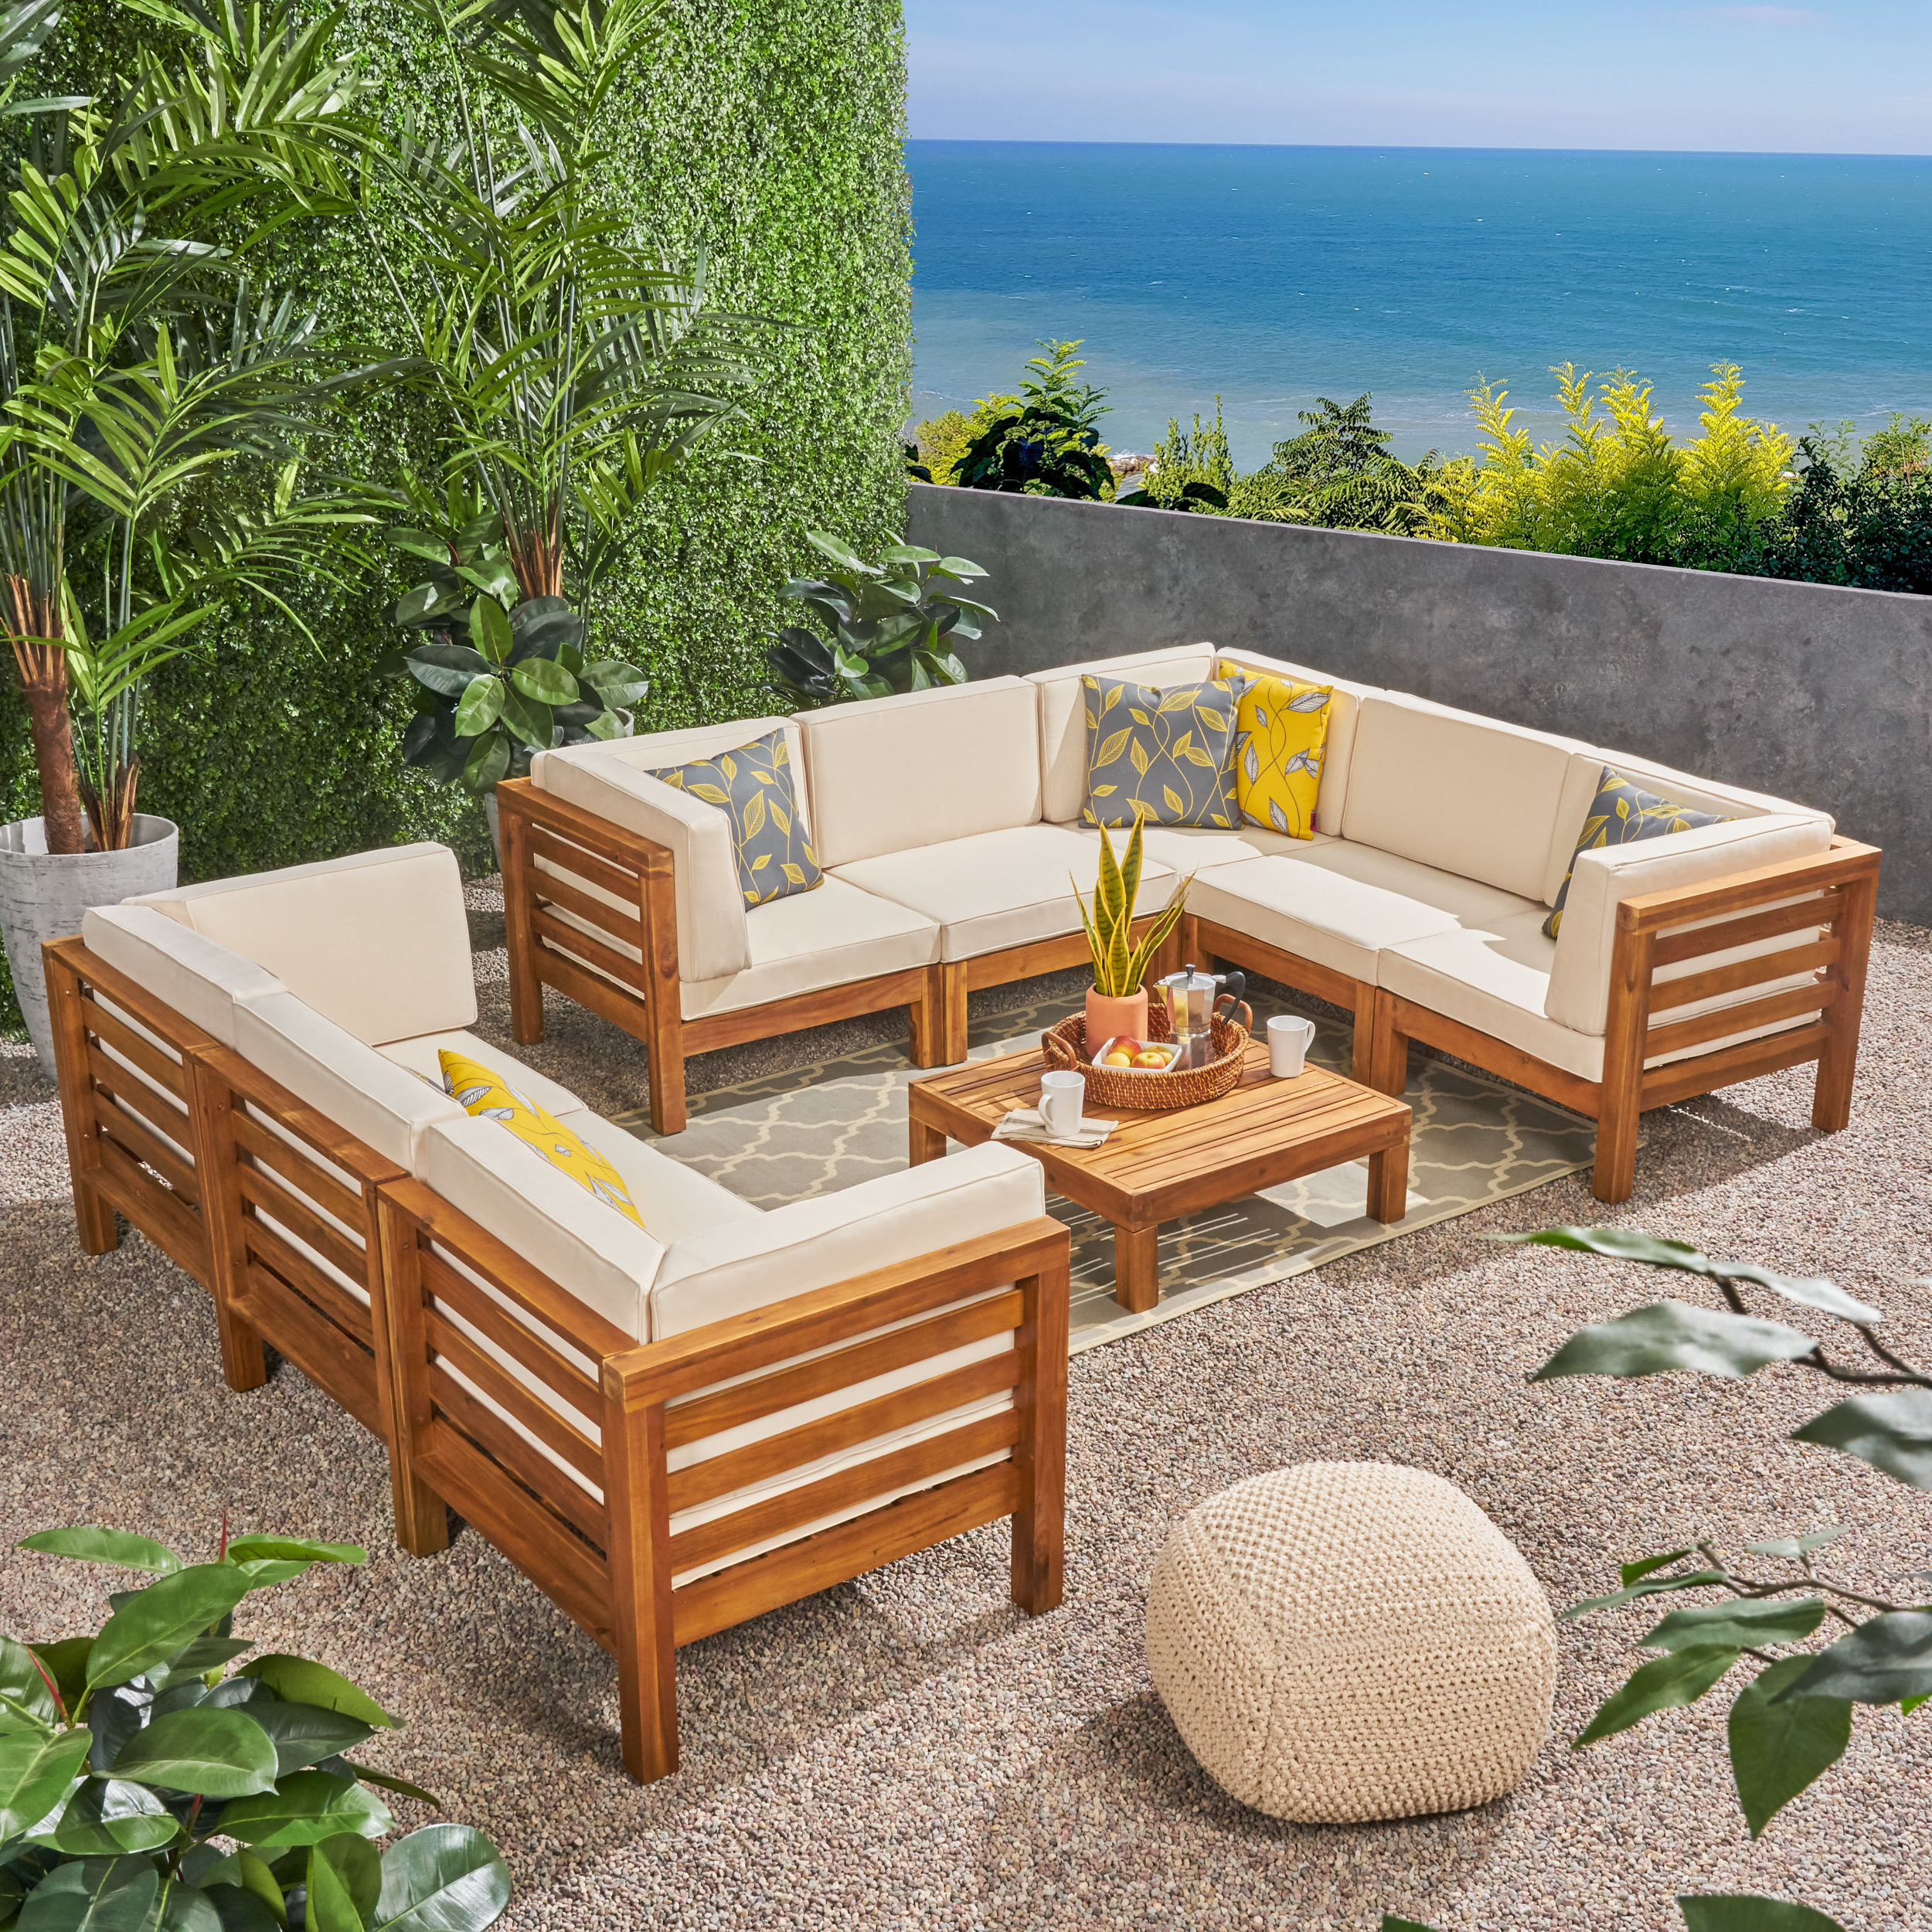 2019 Seaham Patio Sectionals With Cushions In Seaham 9 Piece Teak Sectional Seating Group With Cushions (Gallery 6 of 20)